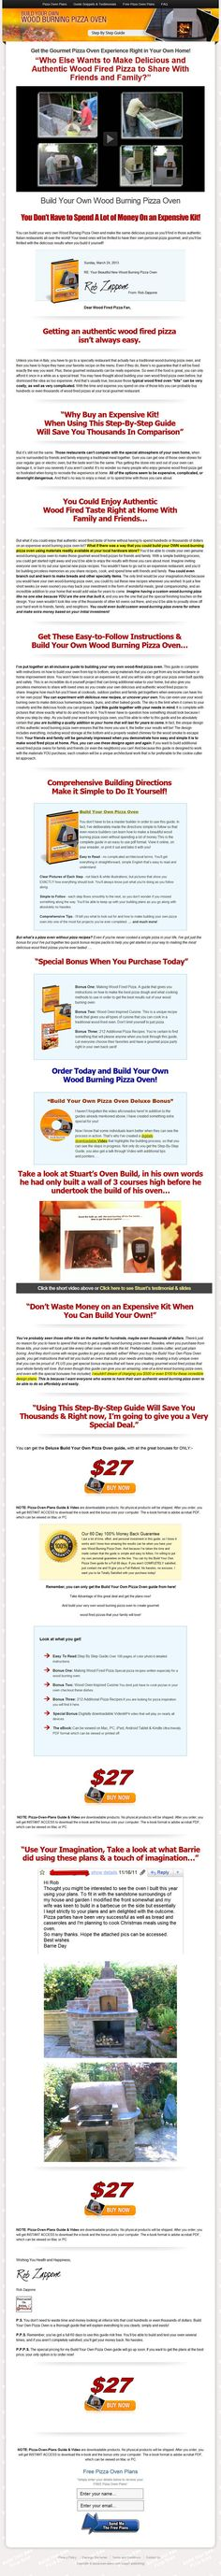 How To Prevent  Build Your Own Wood Burning Pizza Oven  Promotional Codes If it does not show. Please click on the blue square or link. Check Money Back Guarantee  [Build Your Own Wood Burning Pizza Oven] So you are Completely Secured Cash Back Promise You are also secured Resources Again Assure so your buy is chance totally free and you are safe. In circumstance you do n...